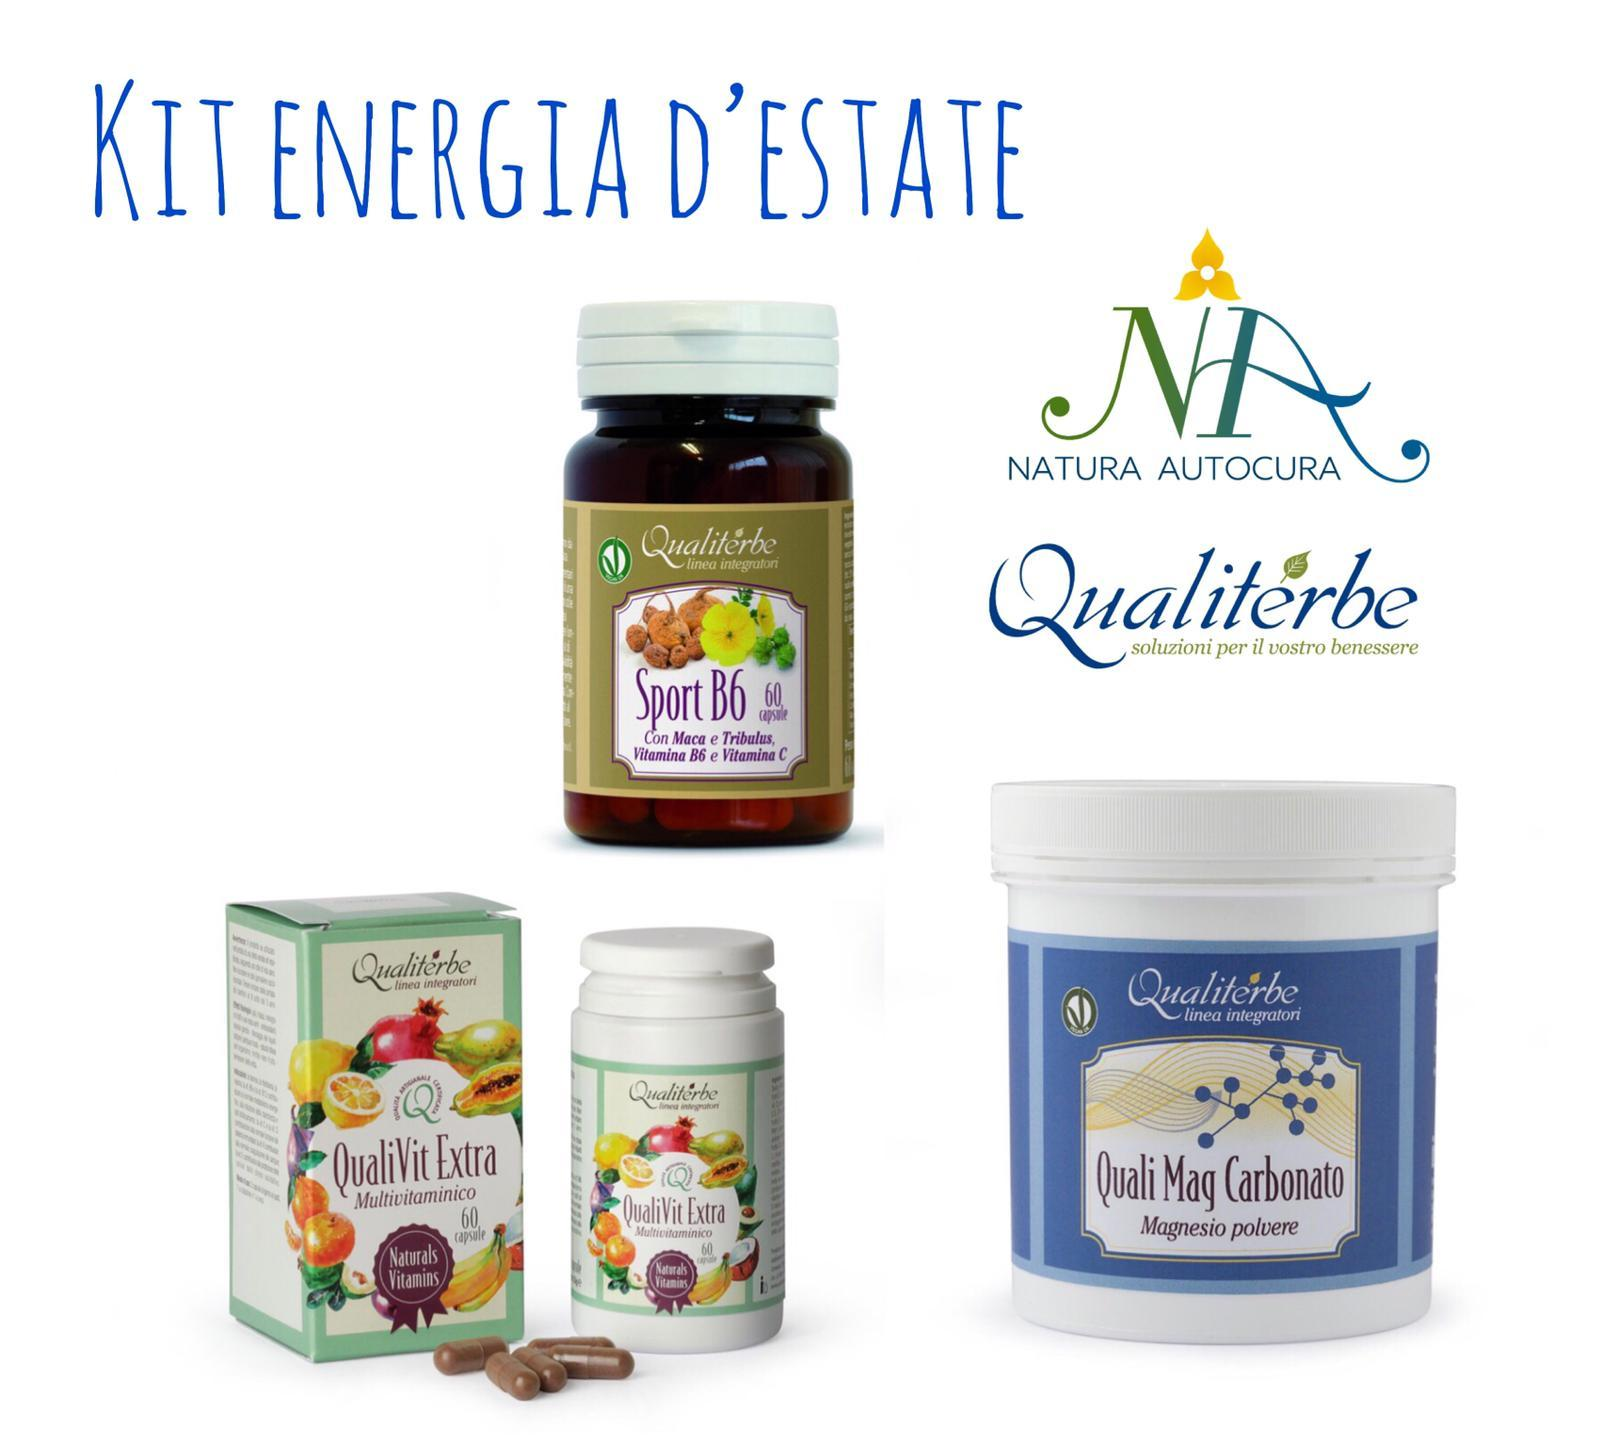 Kit Energia Estate -20% con codice: naturautocura